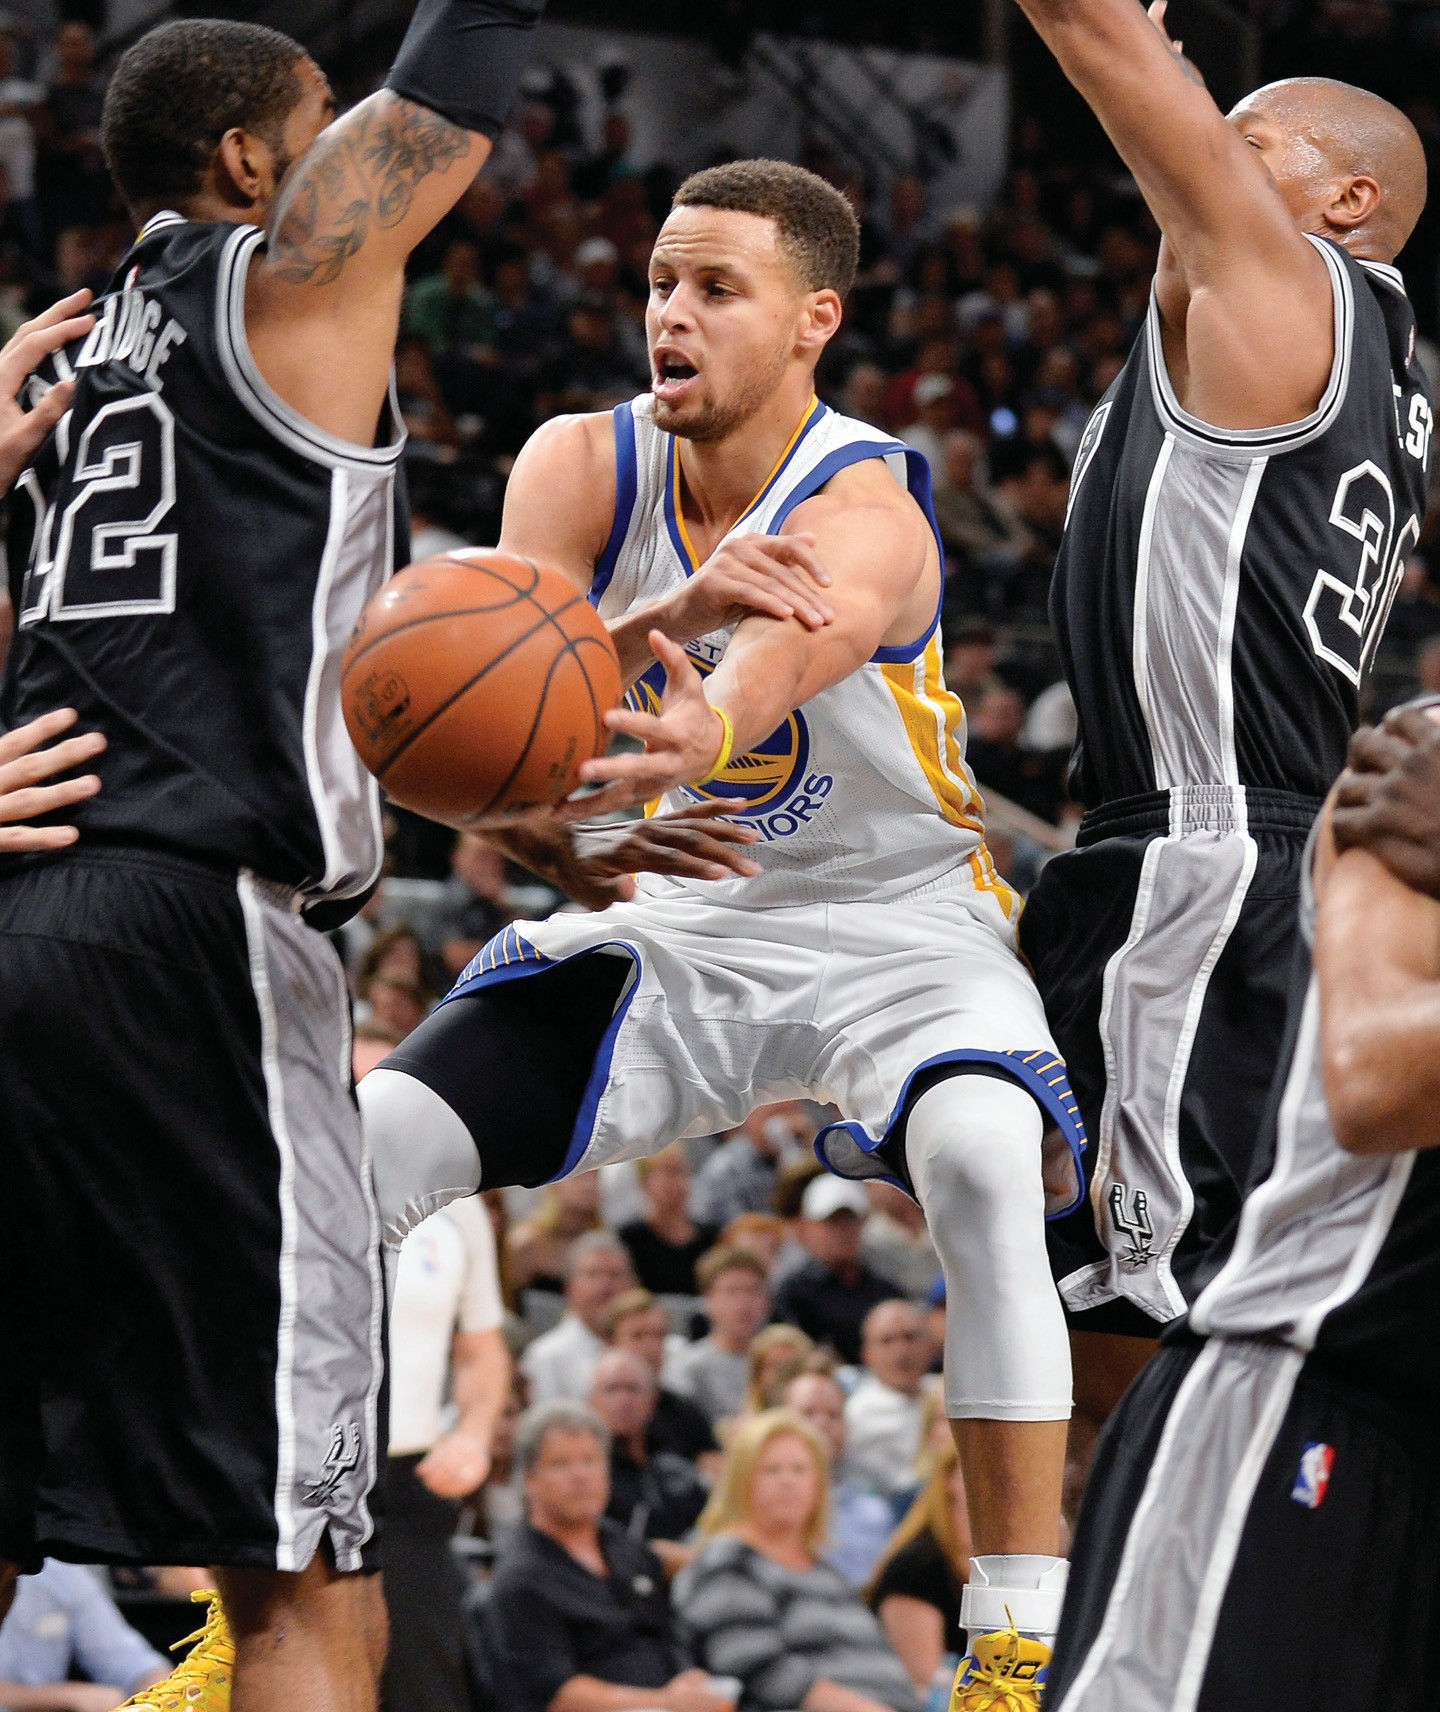 Golden State Warriors guard Stephen Curry, center, passes between San Antonio Spurs' LaMarcus Aldridge (12) and David West during the first half on Sunday.